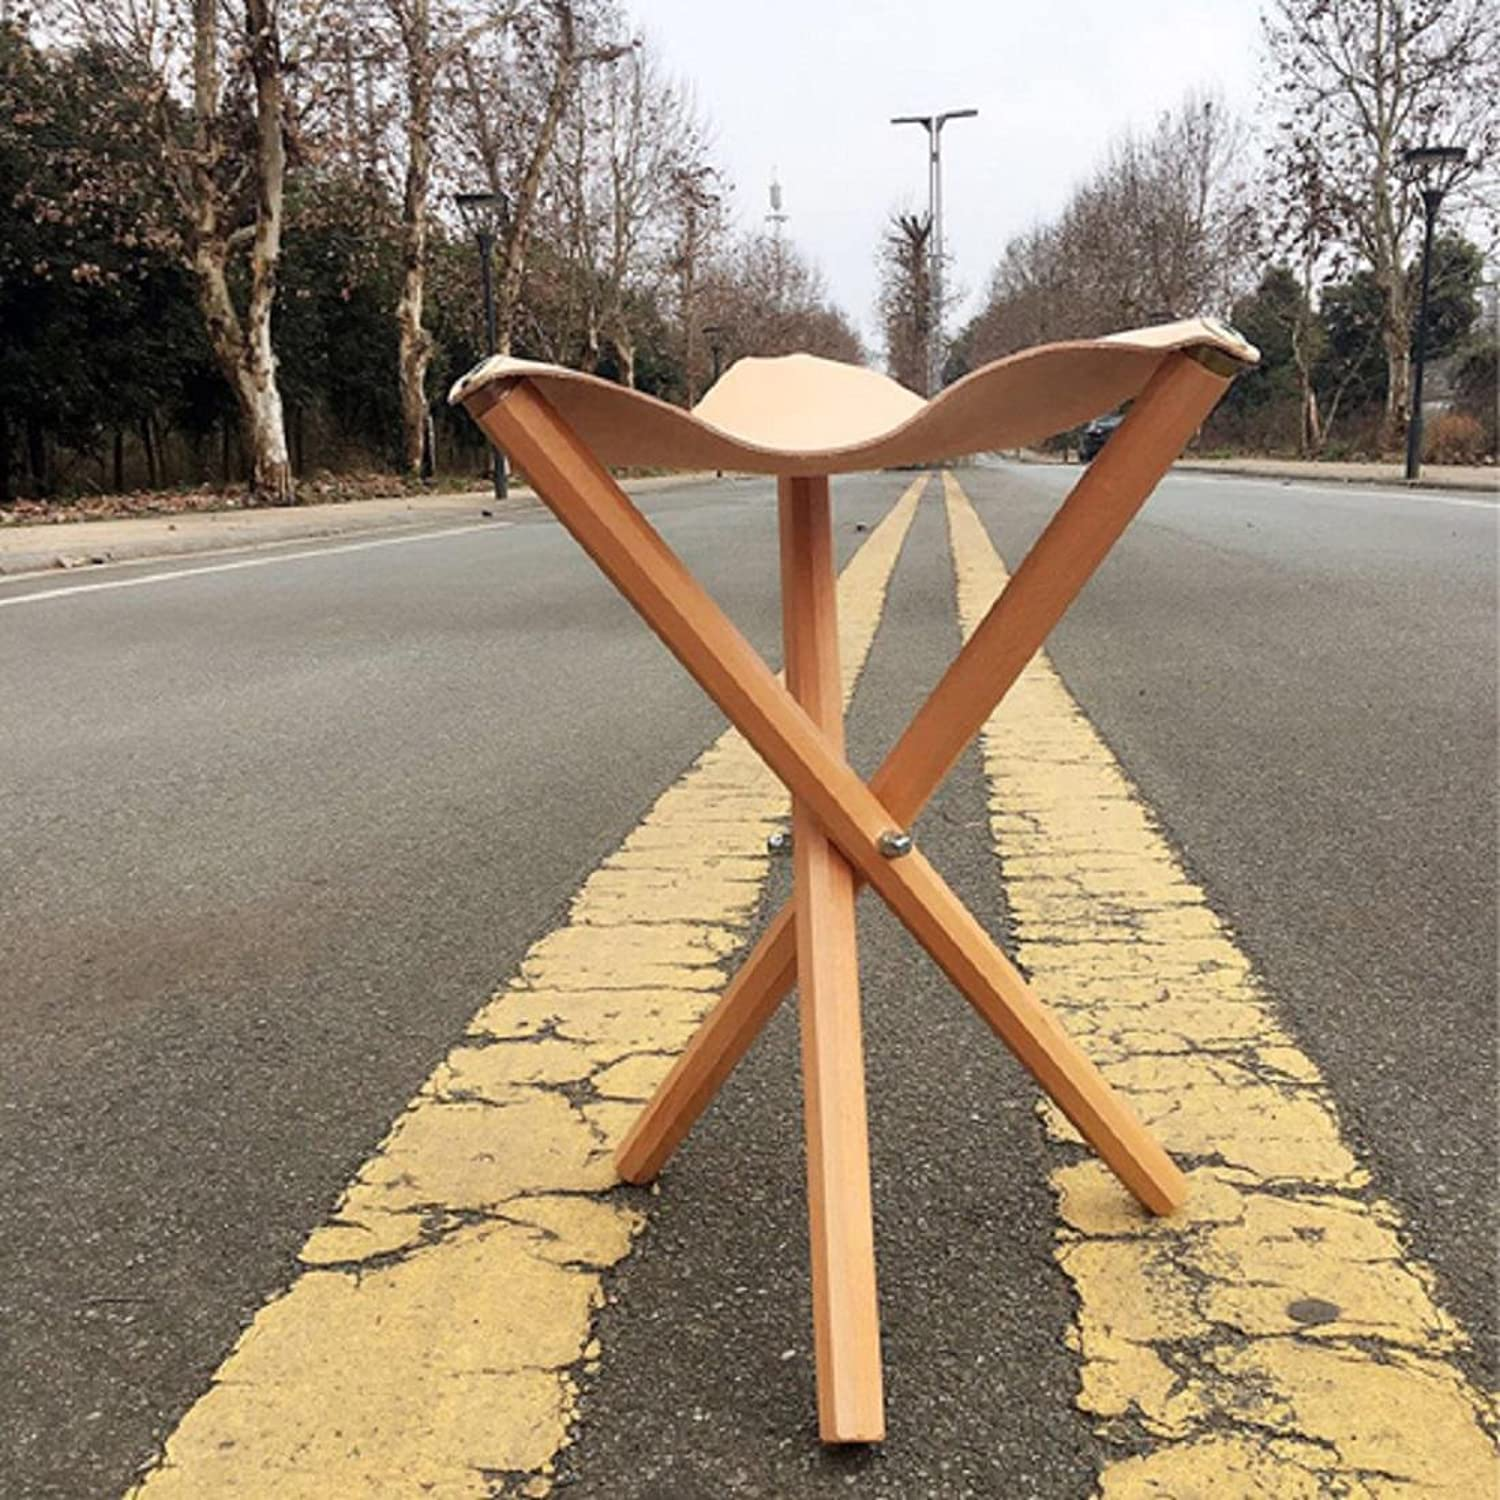 GAOJIAN Creative cowhide Stool Home stool beech wood Triangular stool folding out stool